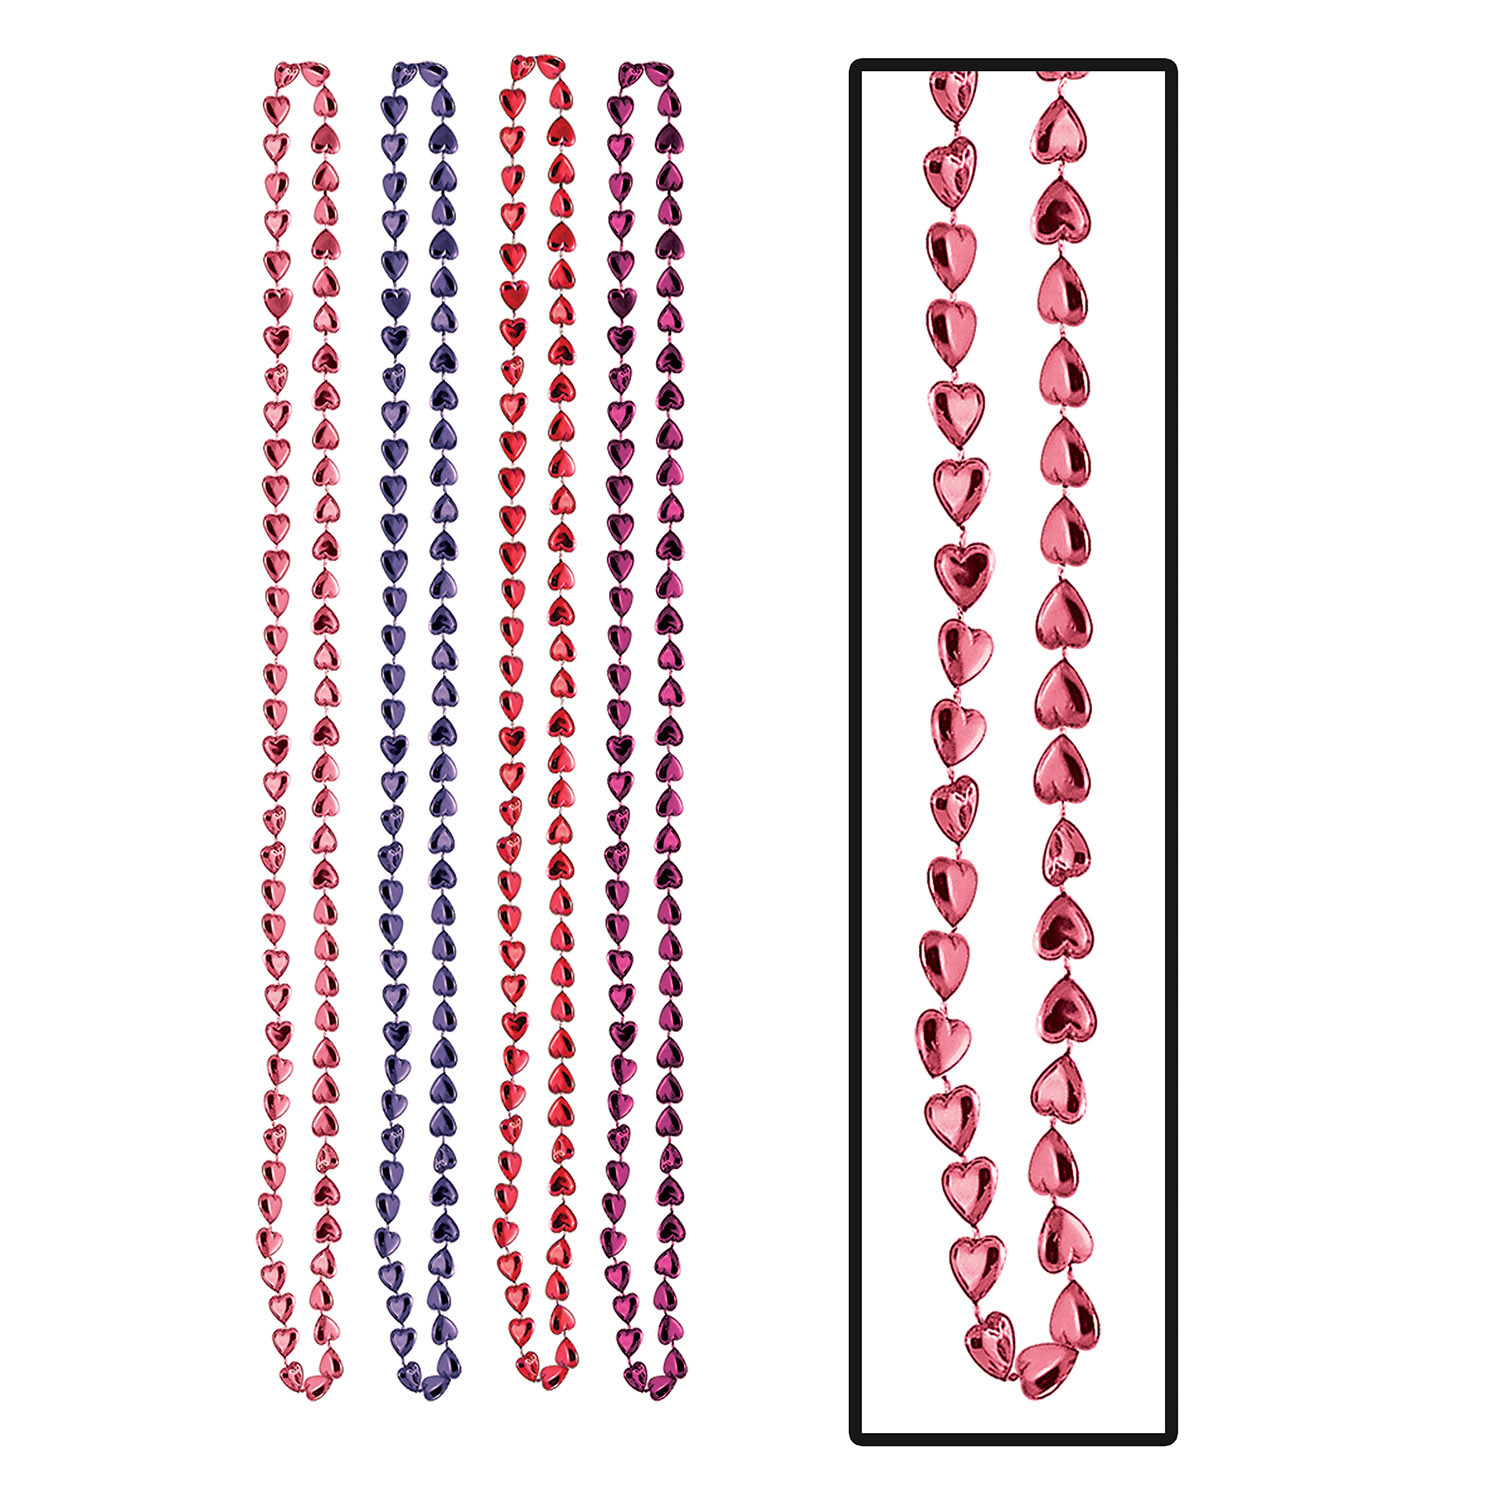 Candy Heart Beads (Pack of 48) Candy Heart Beads, heart, beads, valentines day, wholesale, inexpensive, bulk